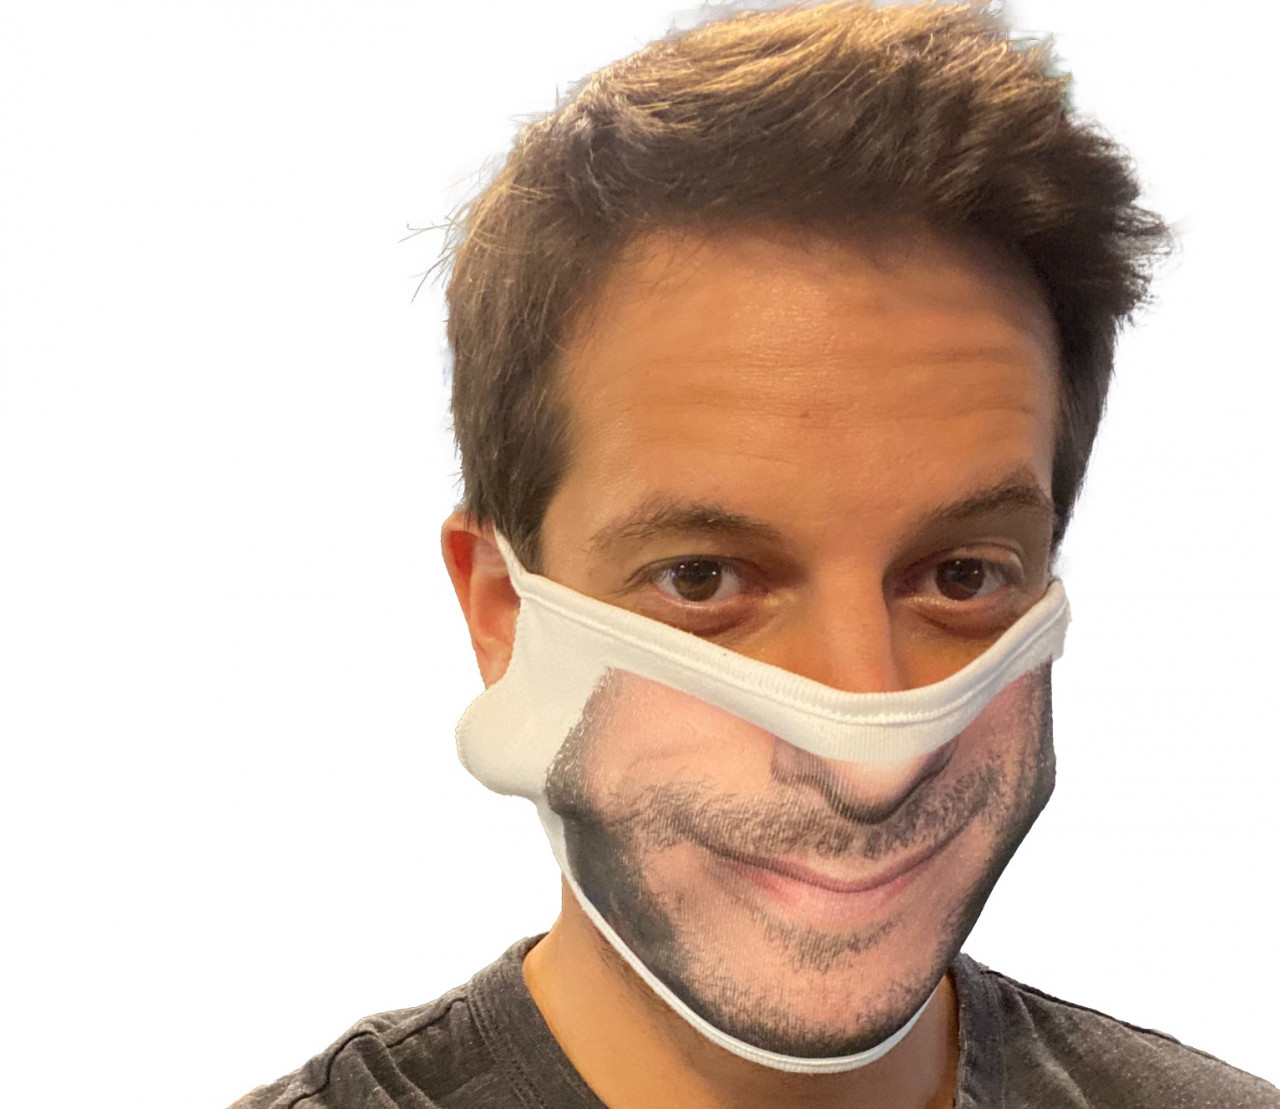 Final product demonstration: A man wearing a mask with his face printed on it as created using a Foto Master Photo Booth product and printing a face mask feature